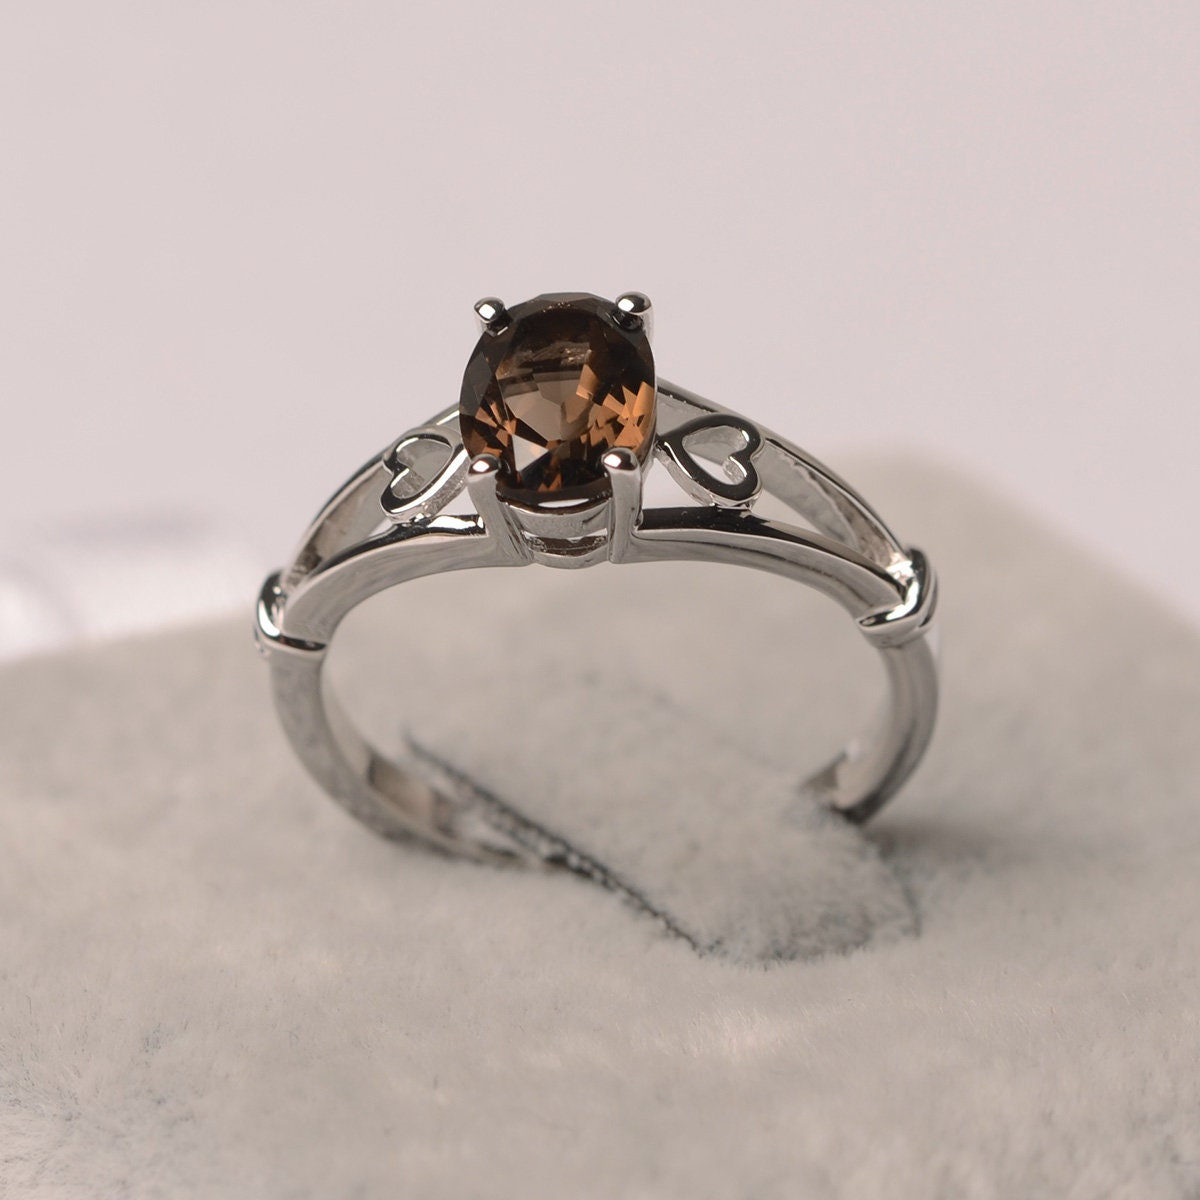 Smoky Quartz Ring Oval Cut Ring Sterling Silver image 0